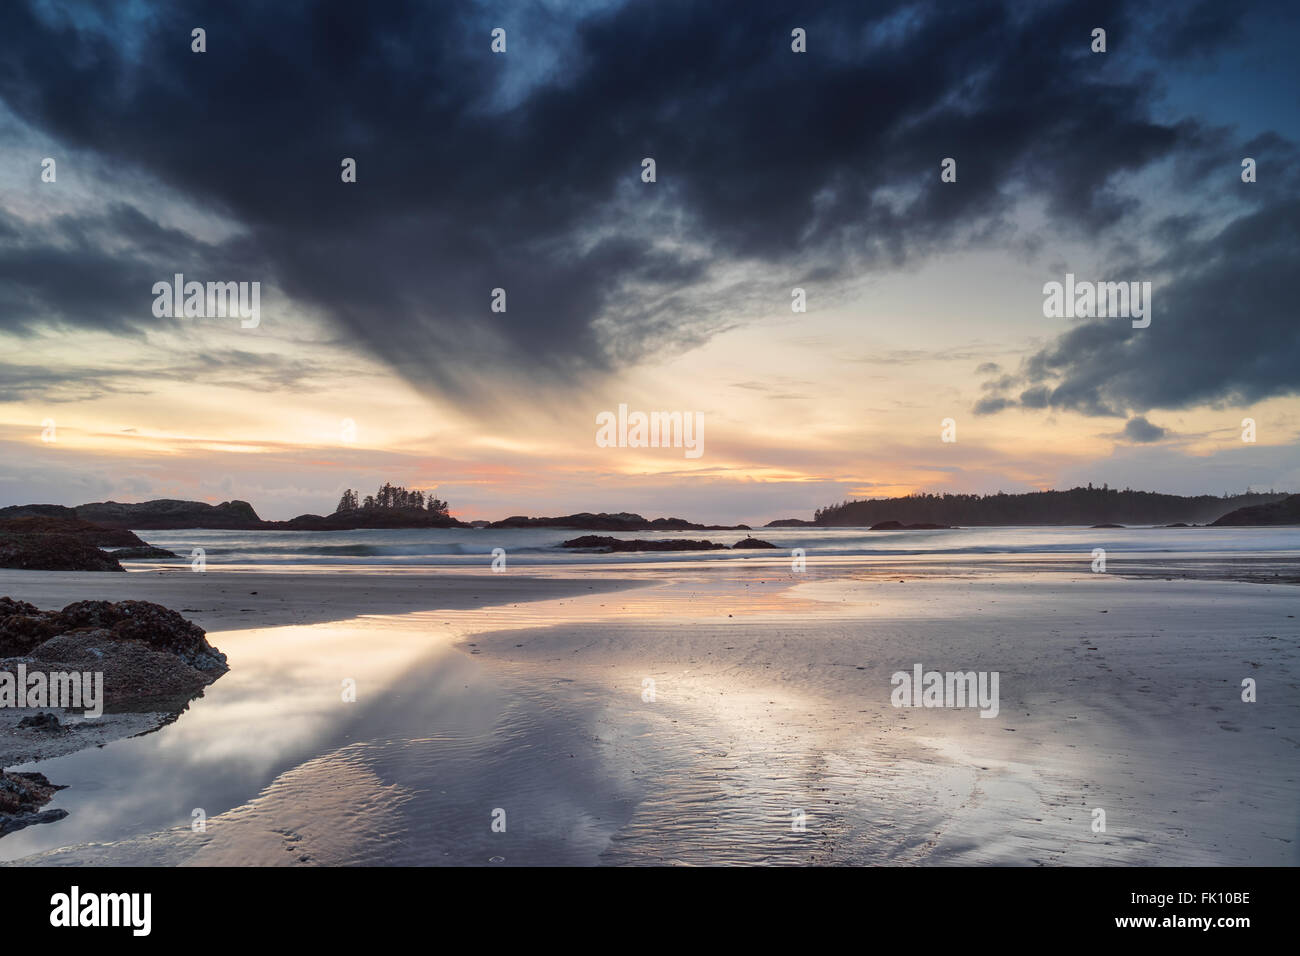 Goleta Cove, Long Beach, Tofino, British Columbia, Pacific Rim National Park Foto de stock